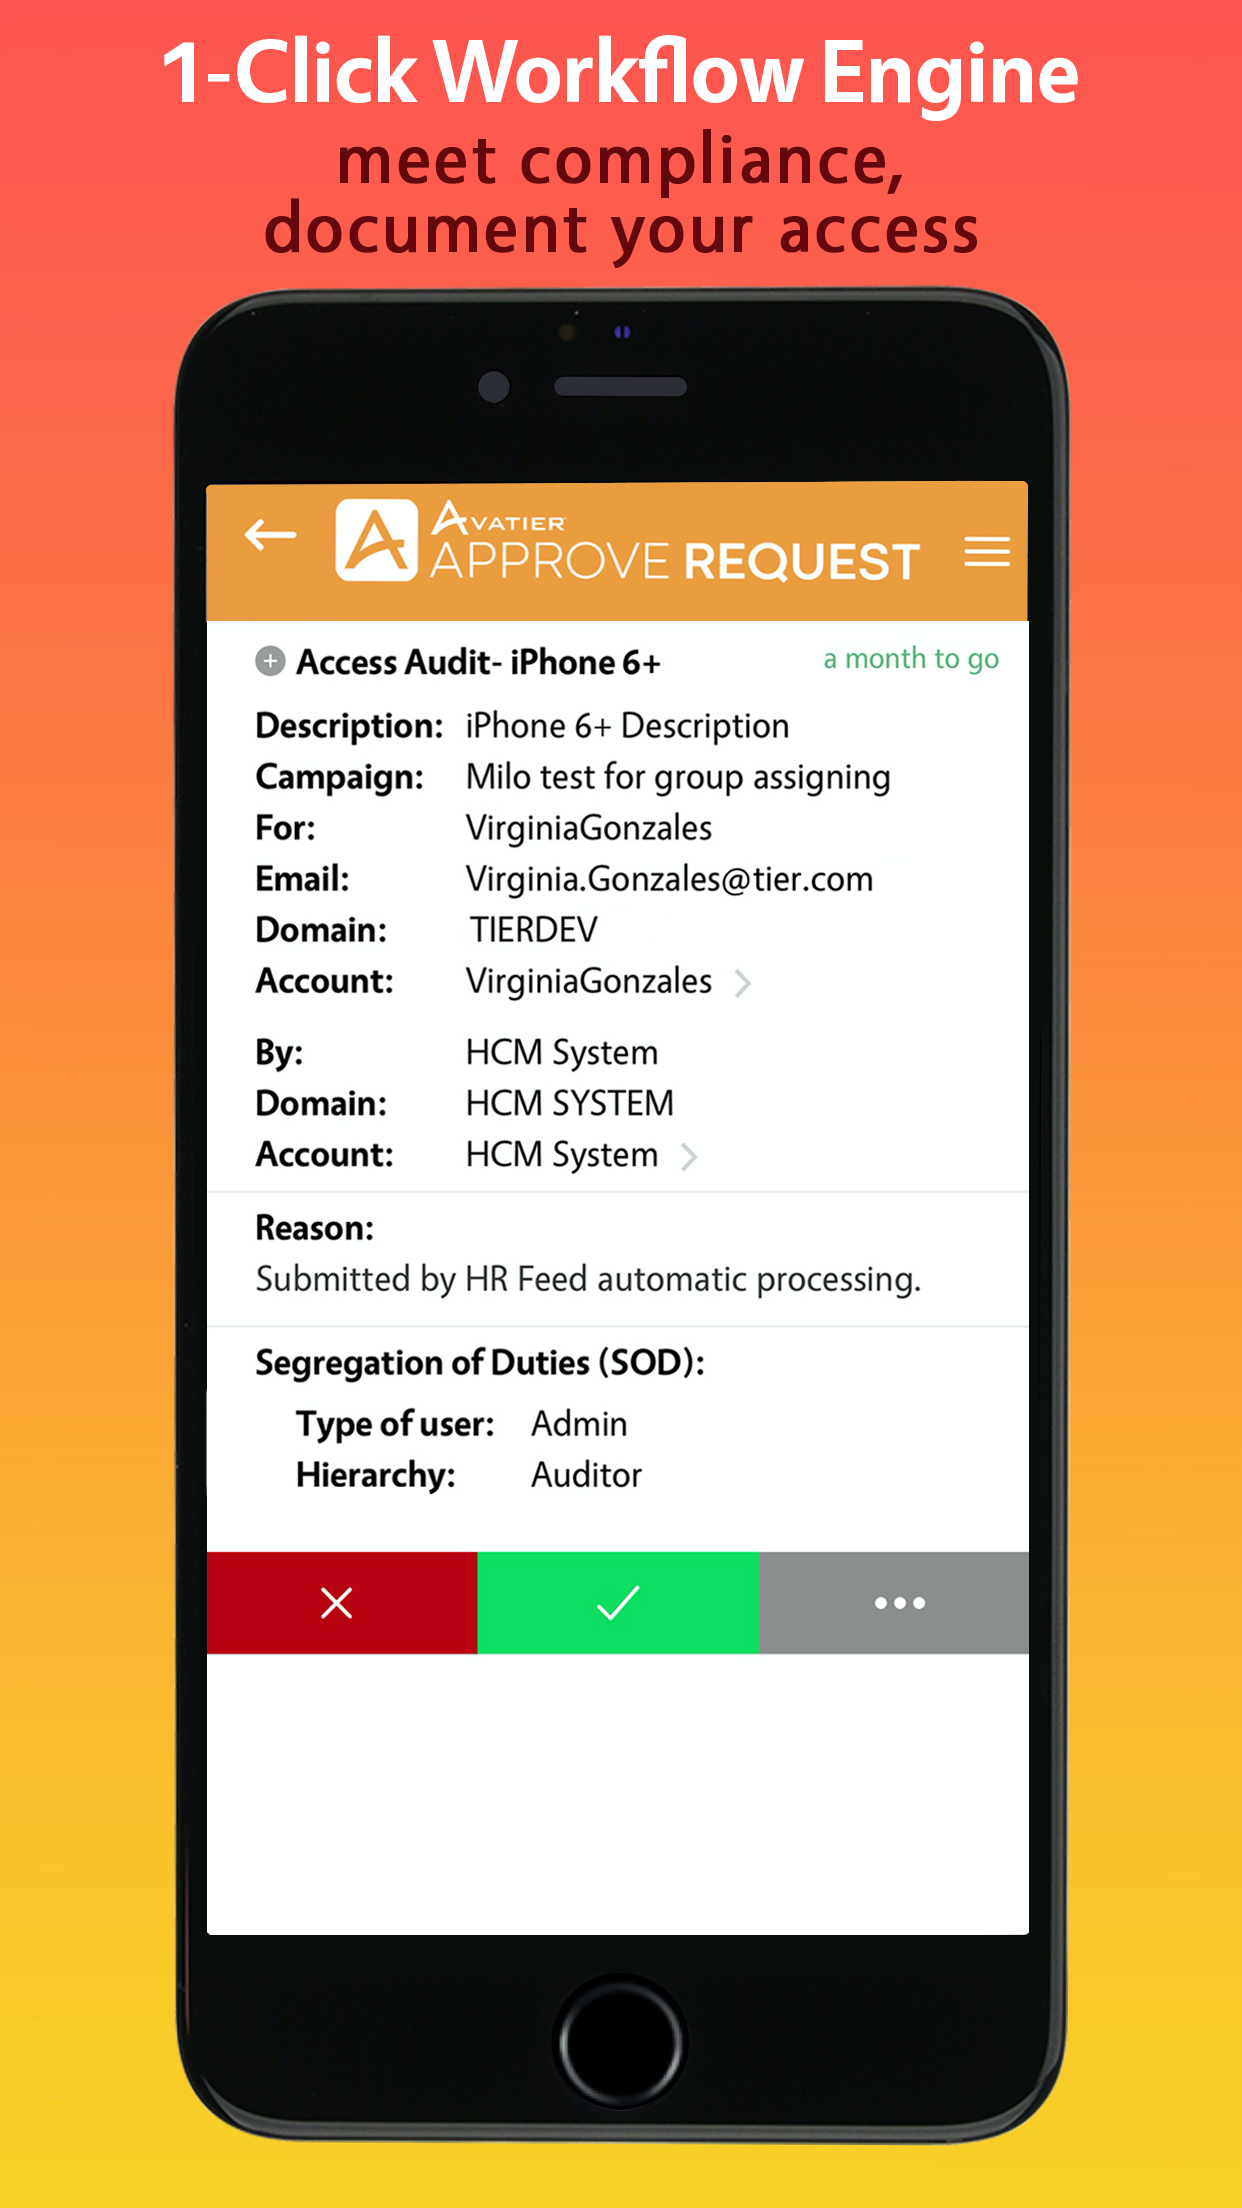 Avatier Identity Anywhere Software - Avatier Identity Anywhere Access Governance